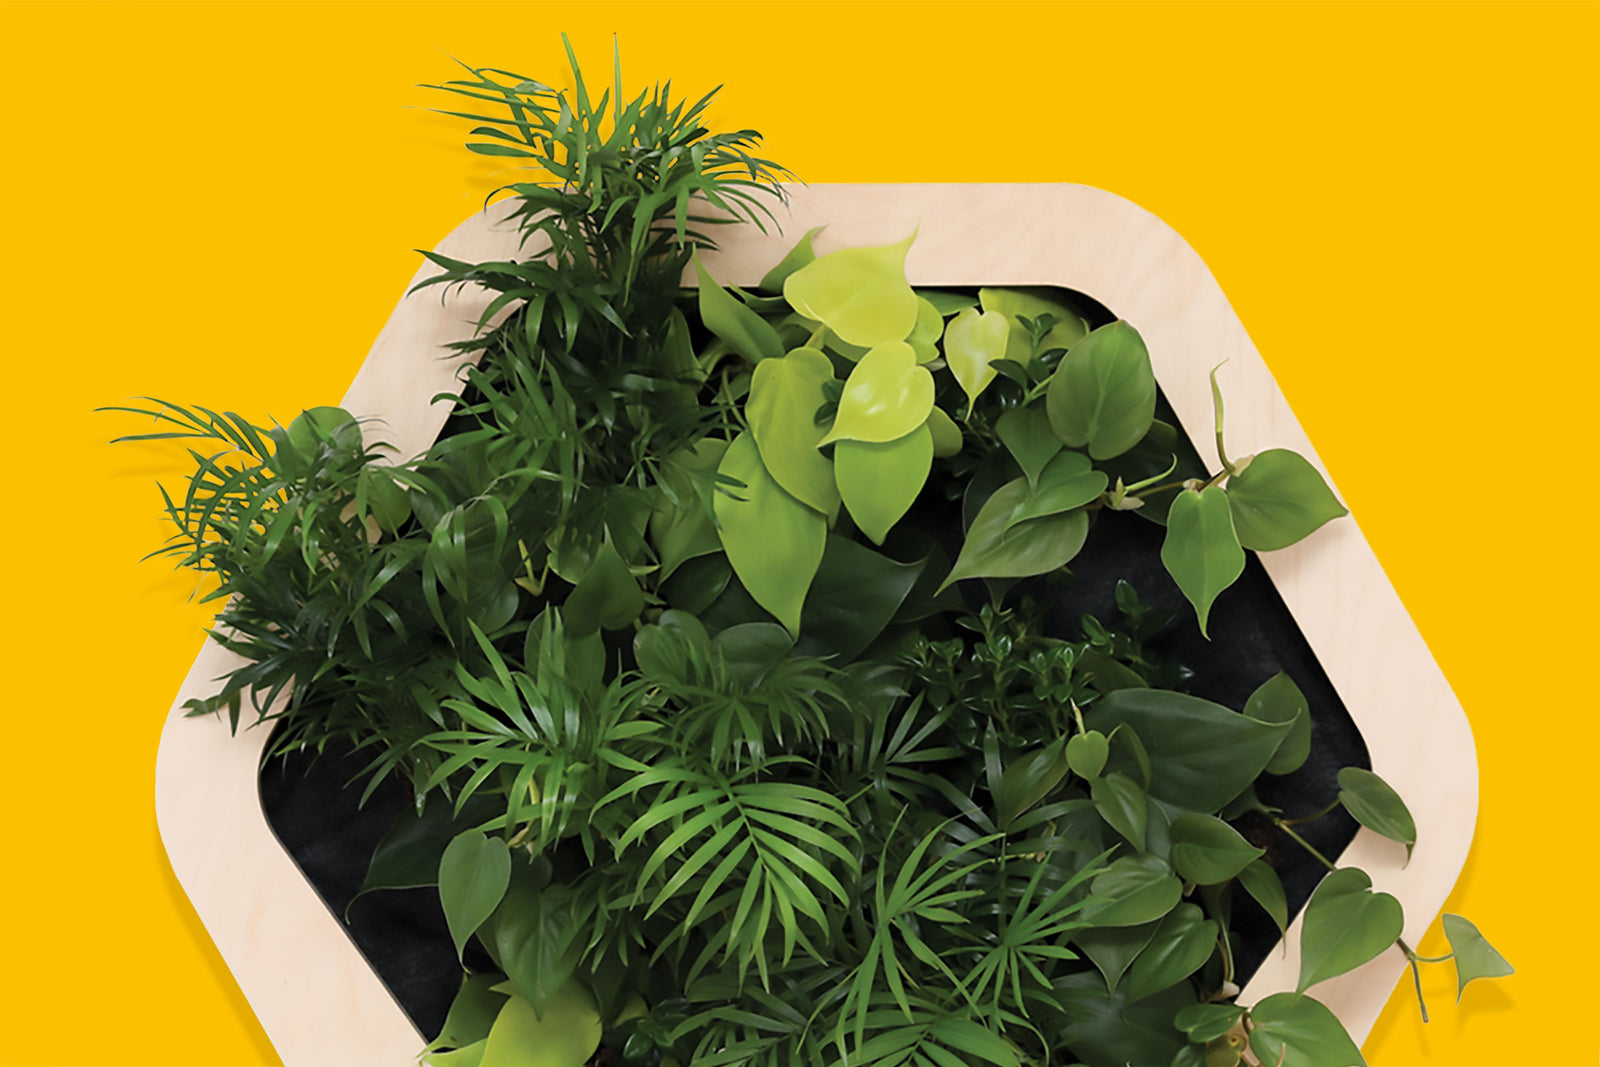 Gromeo A Self Watering Living Wall For Homes Small Spaces